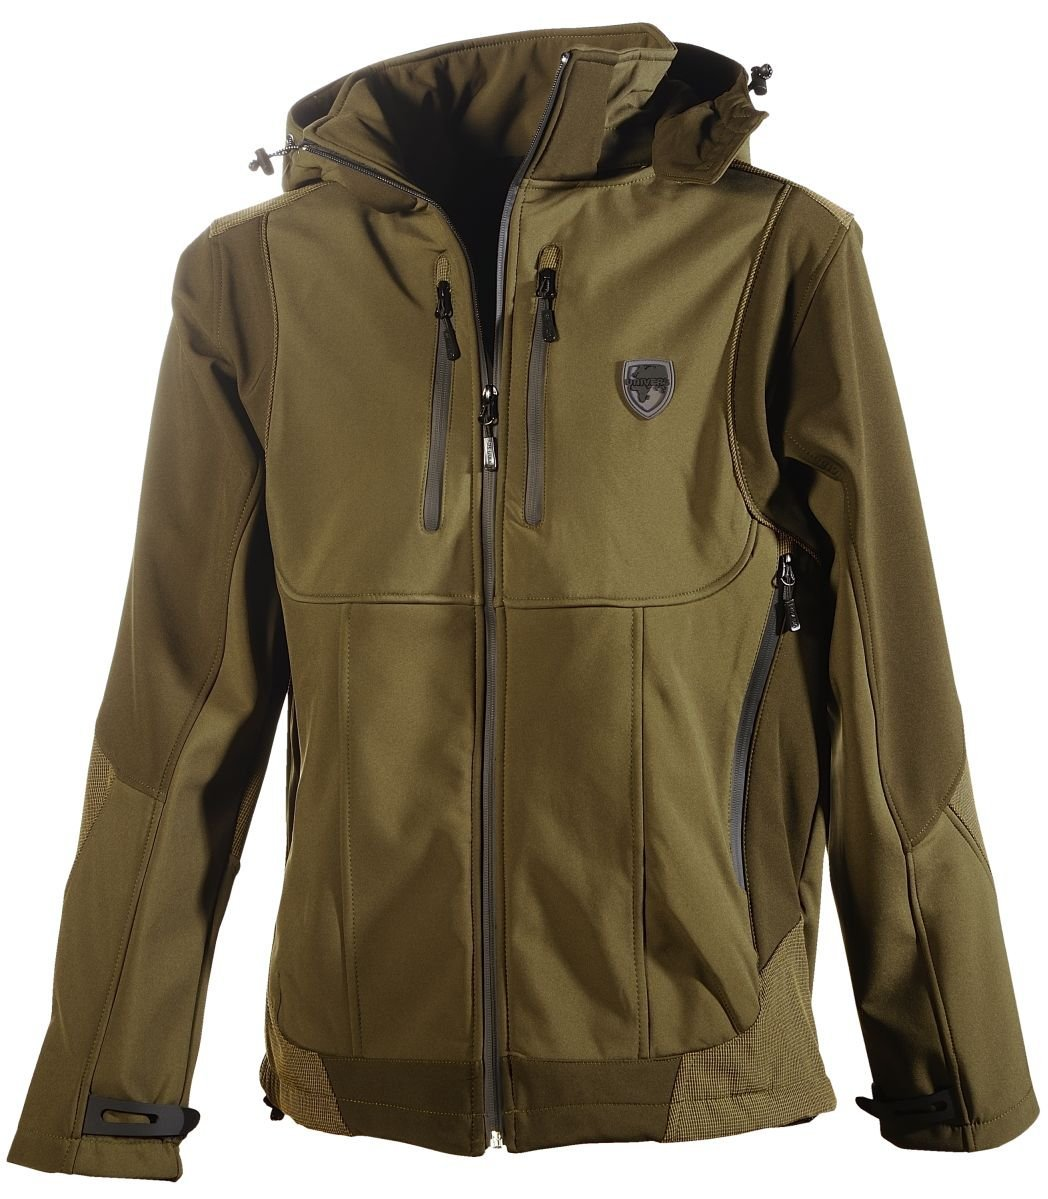 Univers Tex Softshell Jacket 91860 / 326